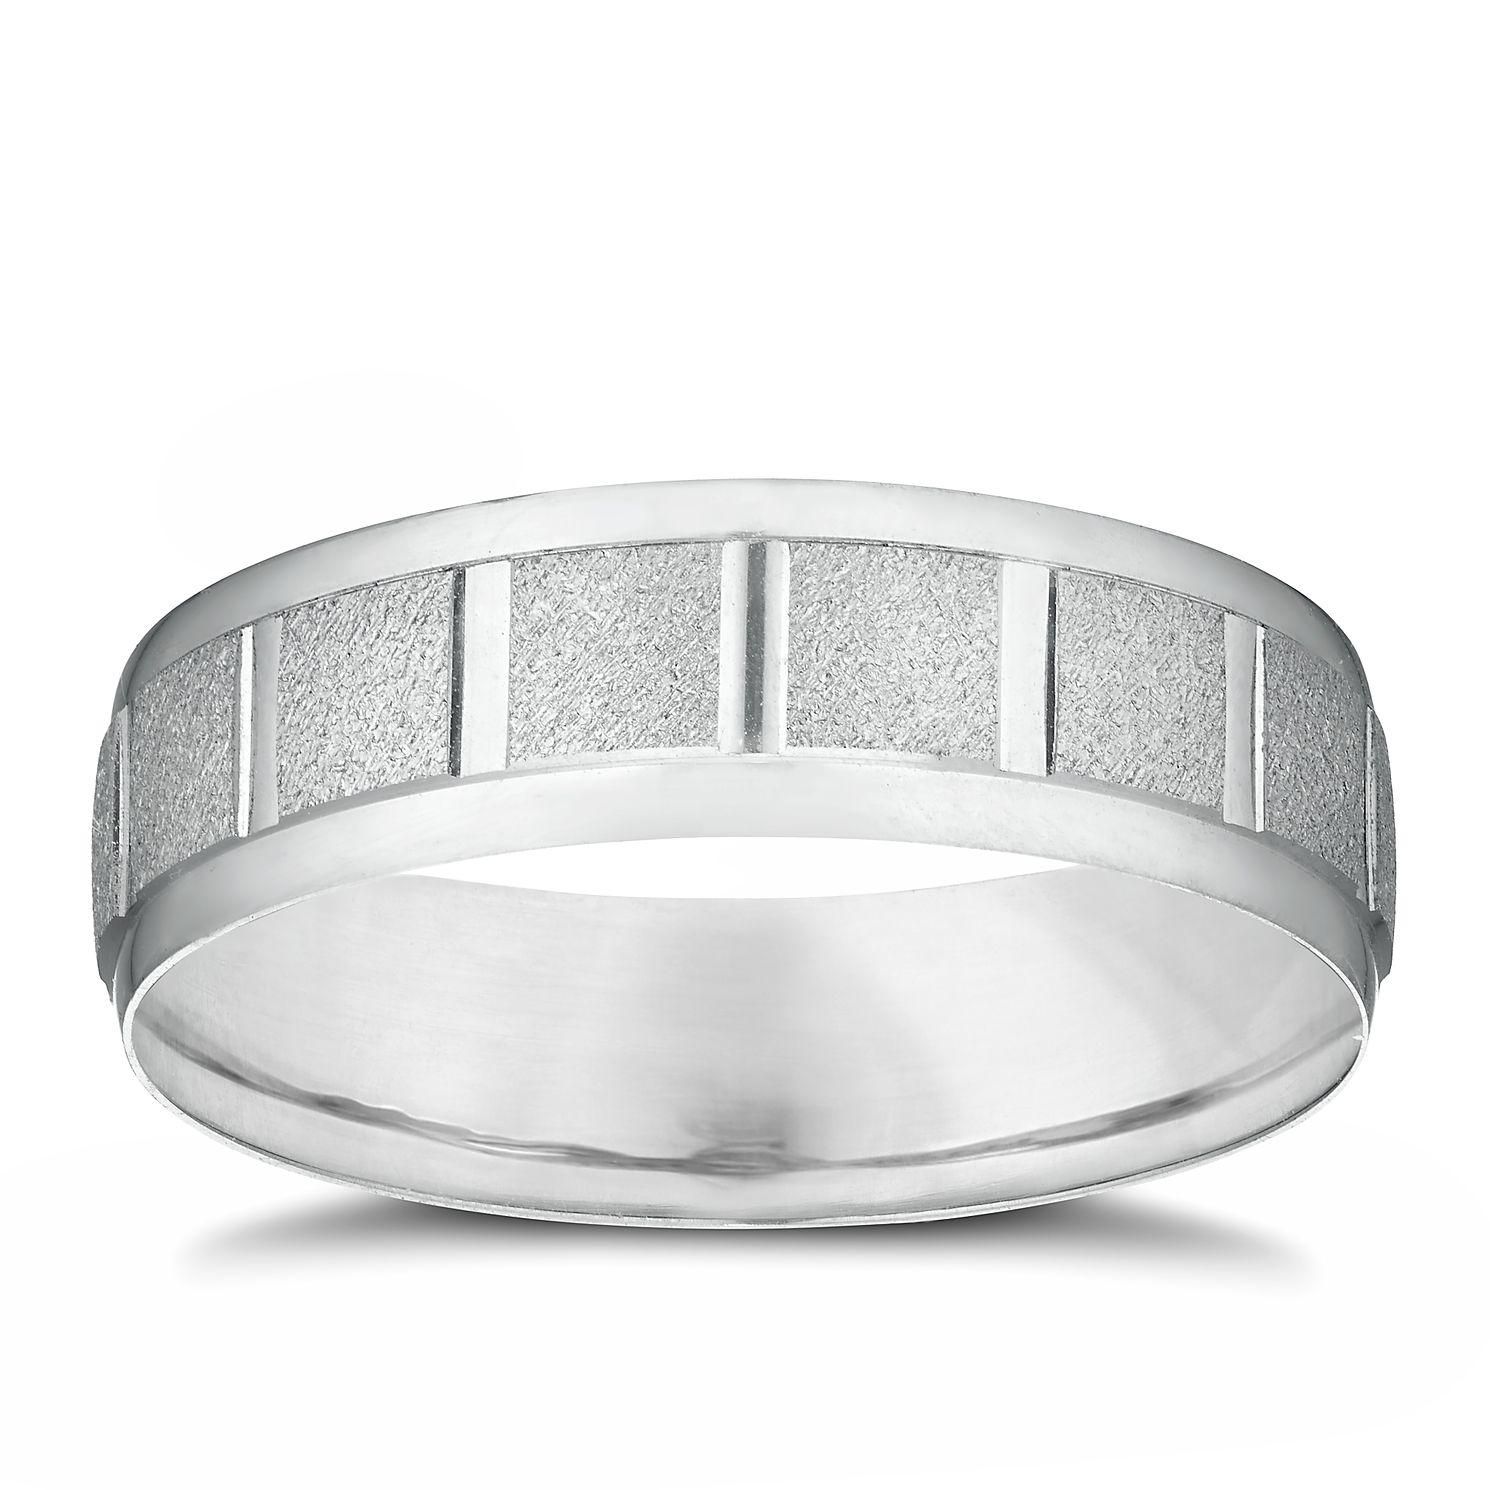 9ct White Gold Matt & Polished Square Patterned Band - Product number 3215253